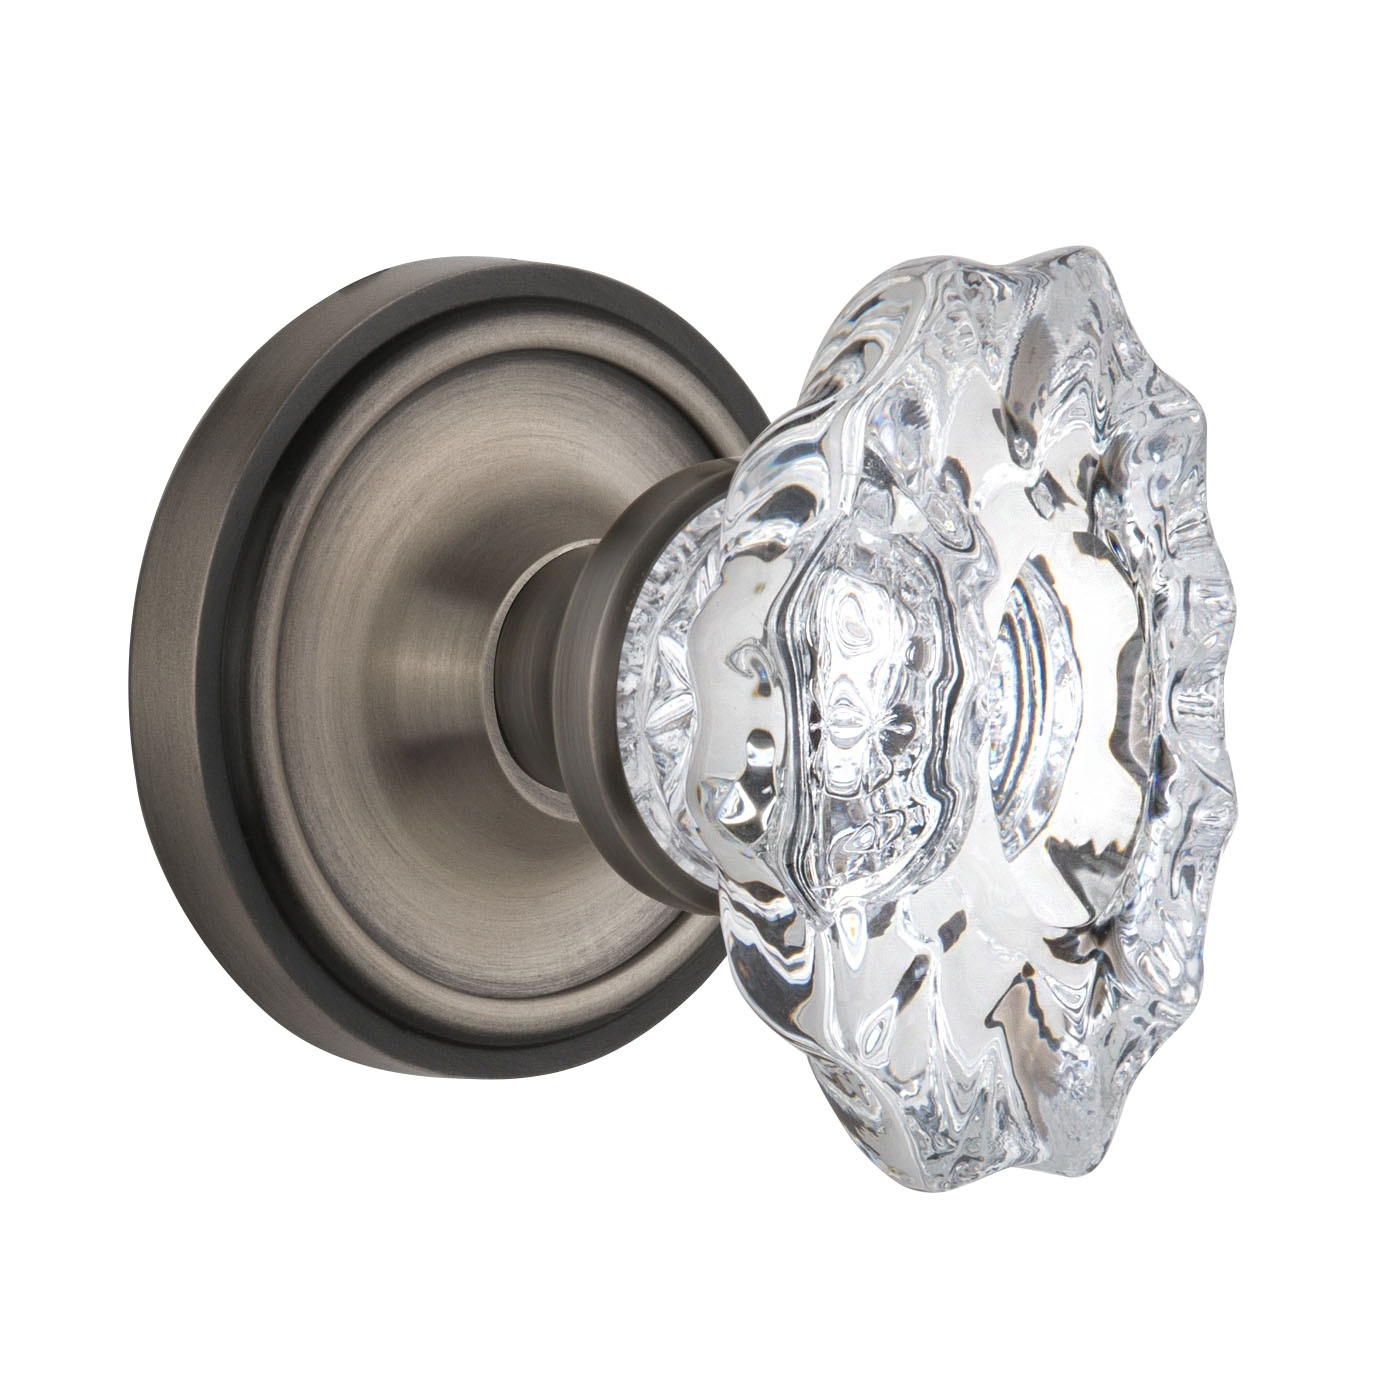 Nostalgic Warehouse Chateau Crystal Knob Privacy Mortise with Classic Rose AP